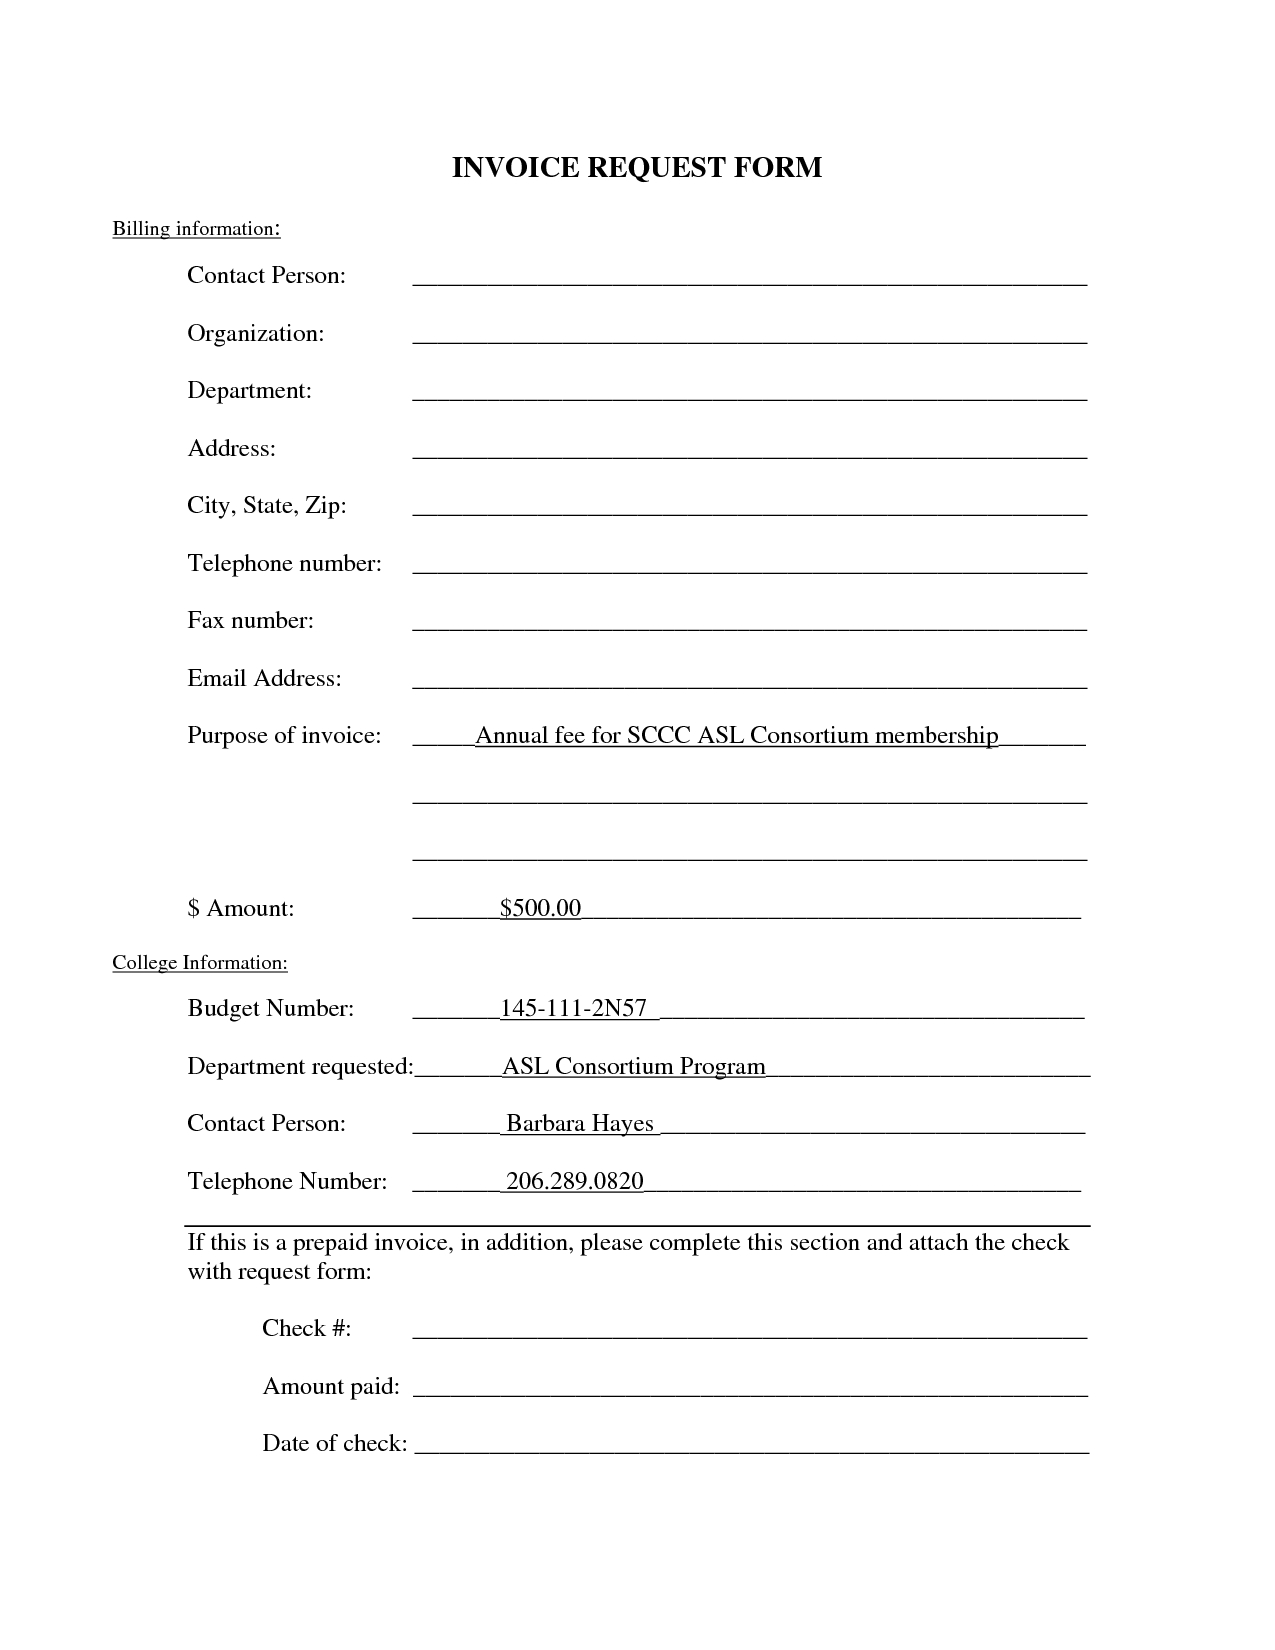 standard invoice form invoice request form template dd form 1149 copy of invoice template